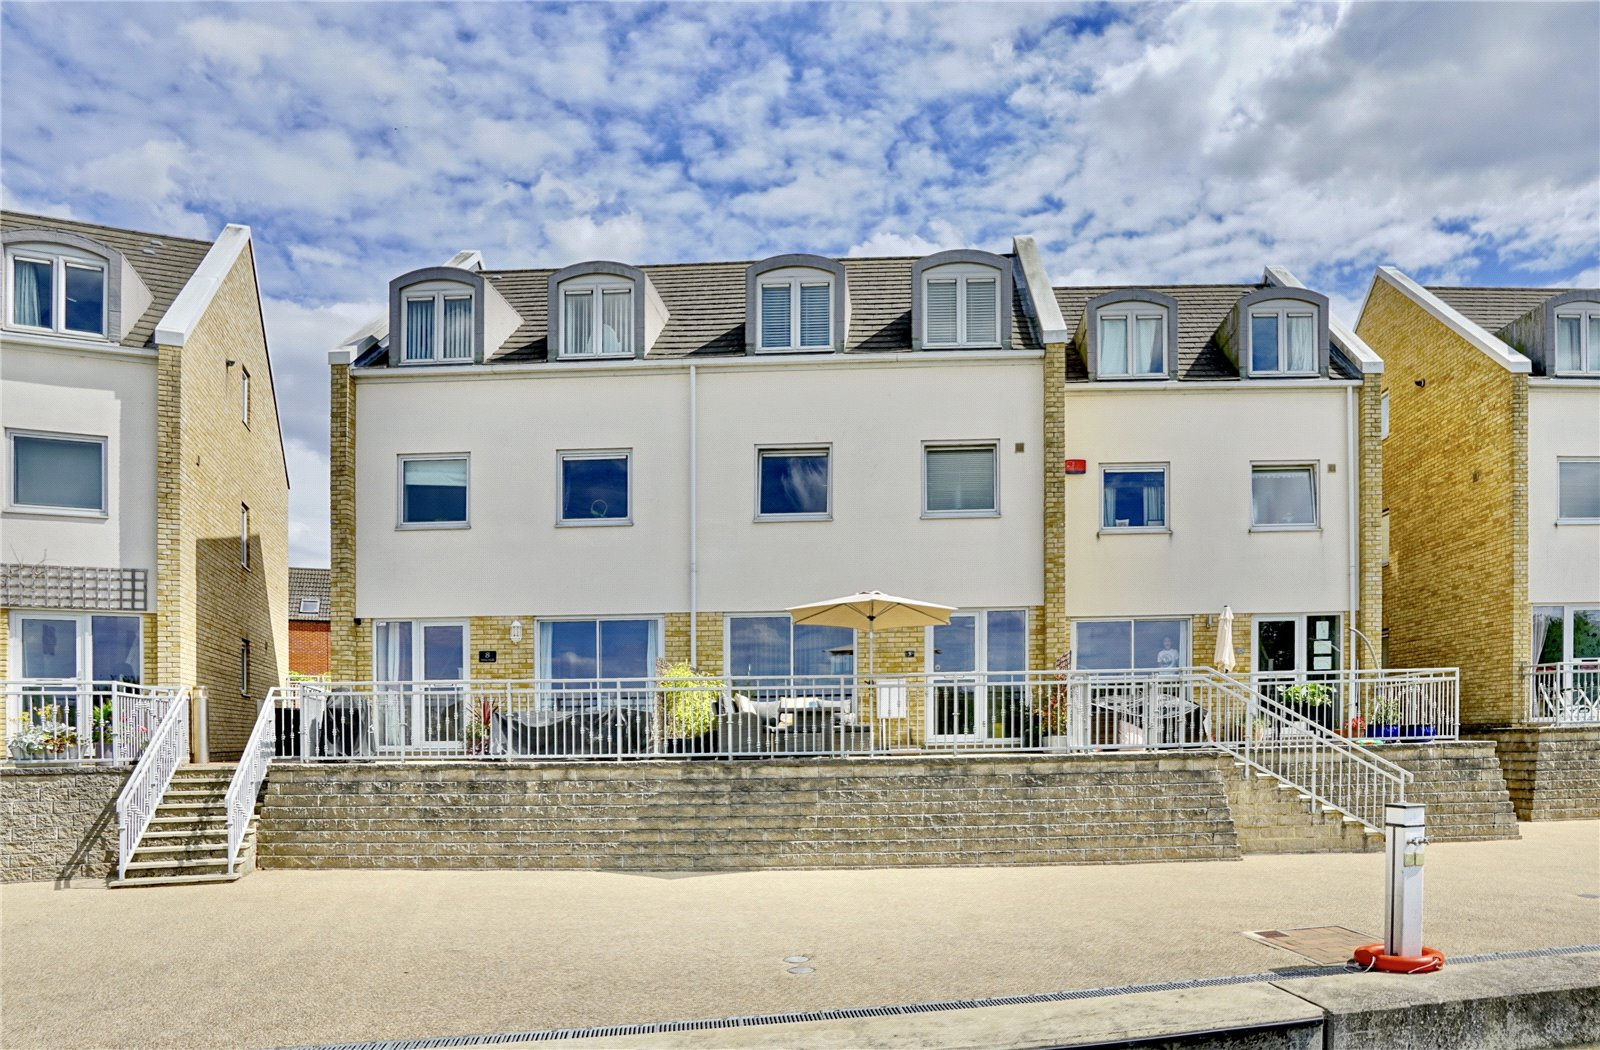 4 bed house for sale in Wren Walk, Eynesbury, PE19